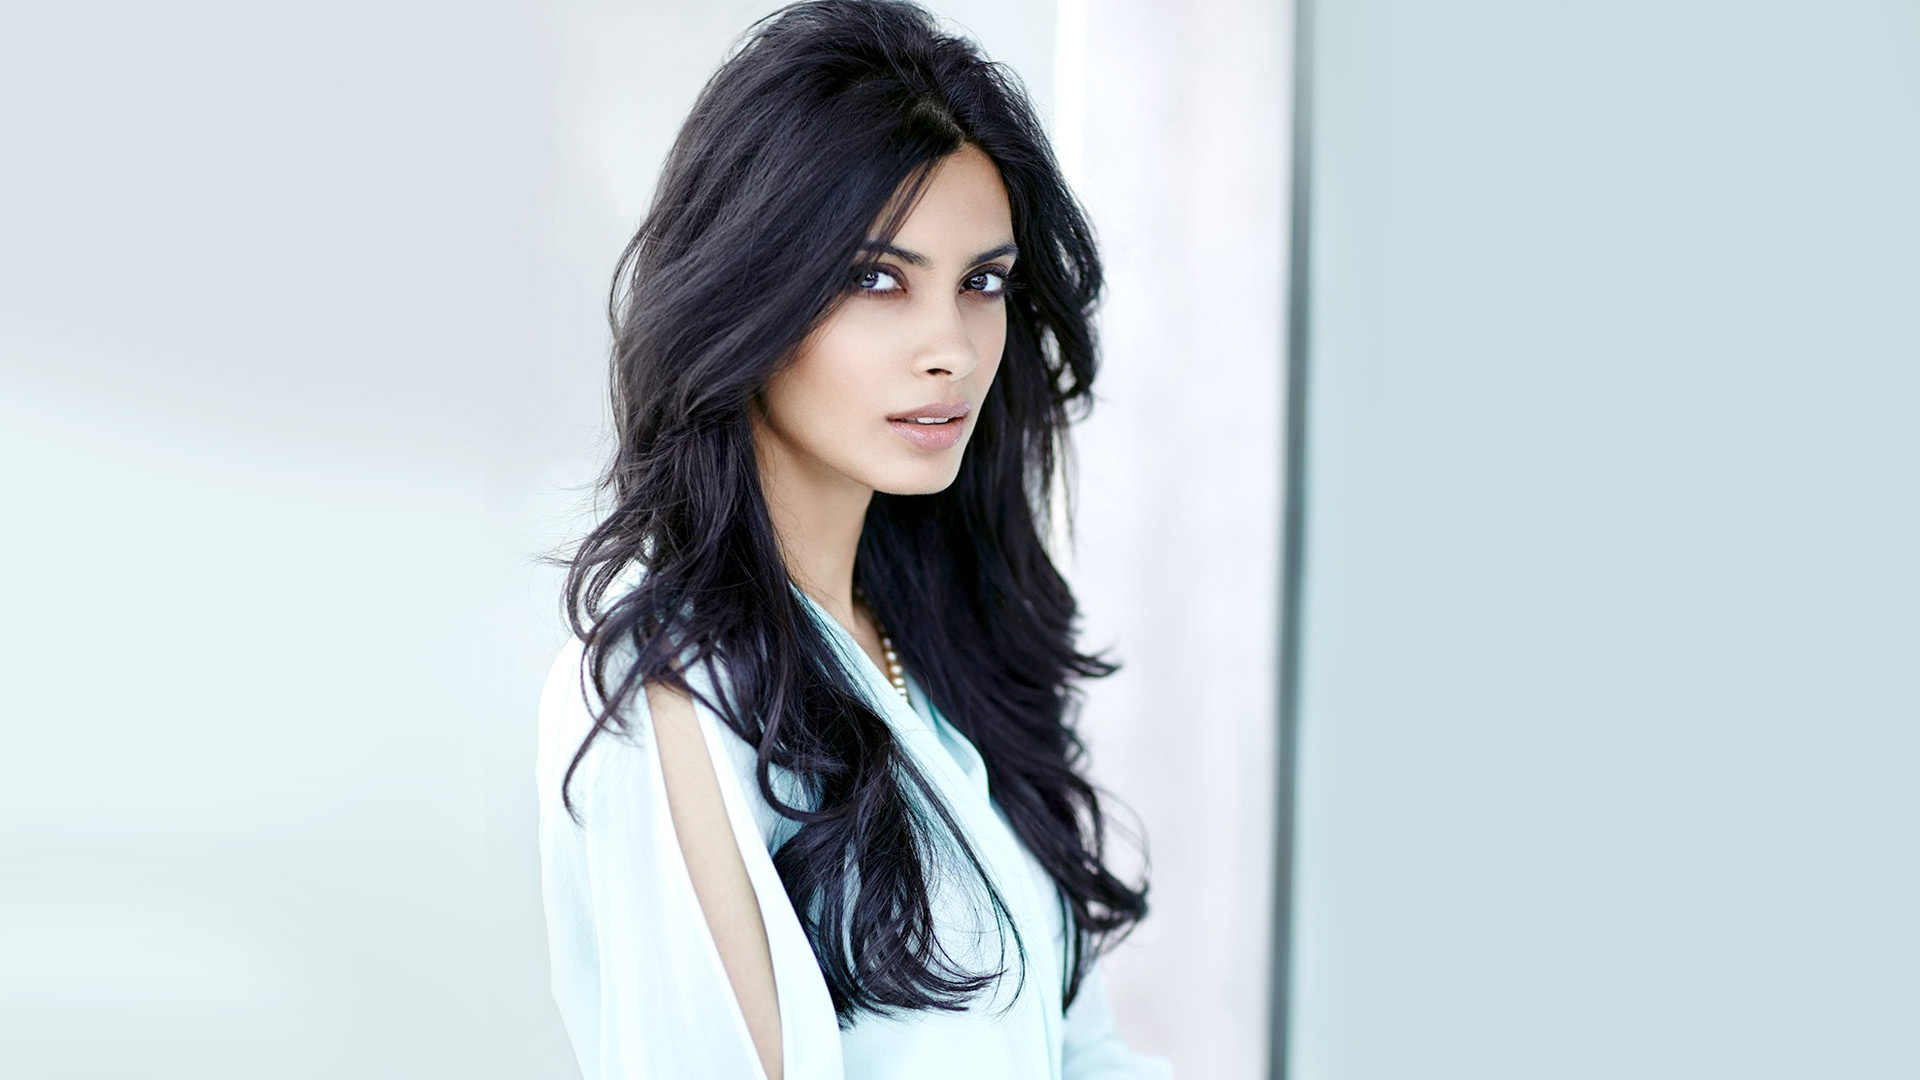 diana penty wallpapers in jpg format for free download